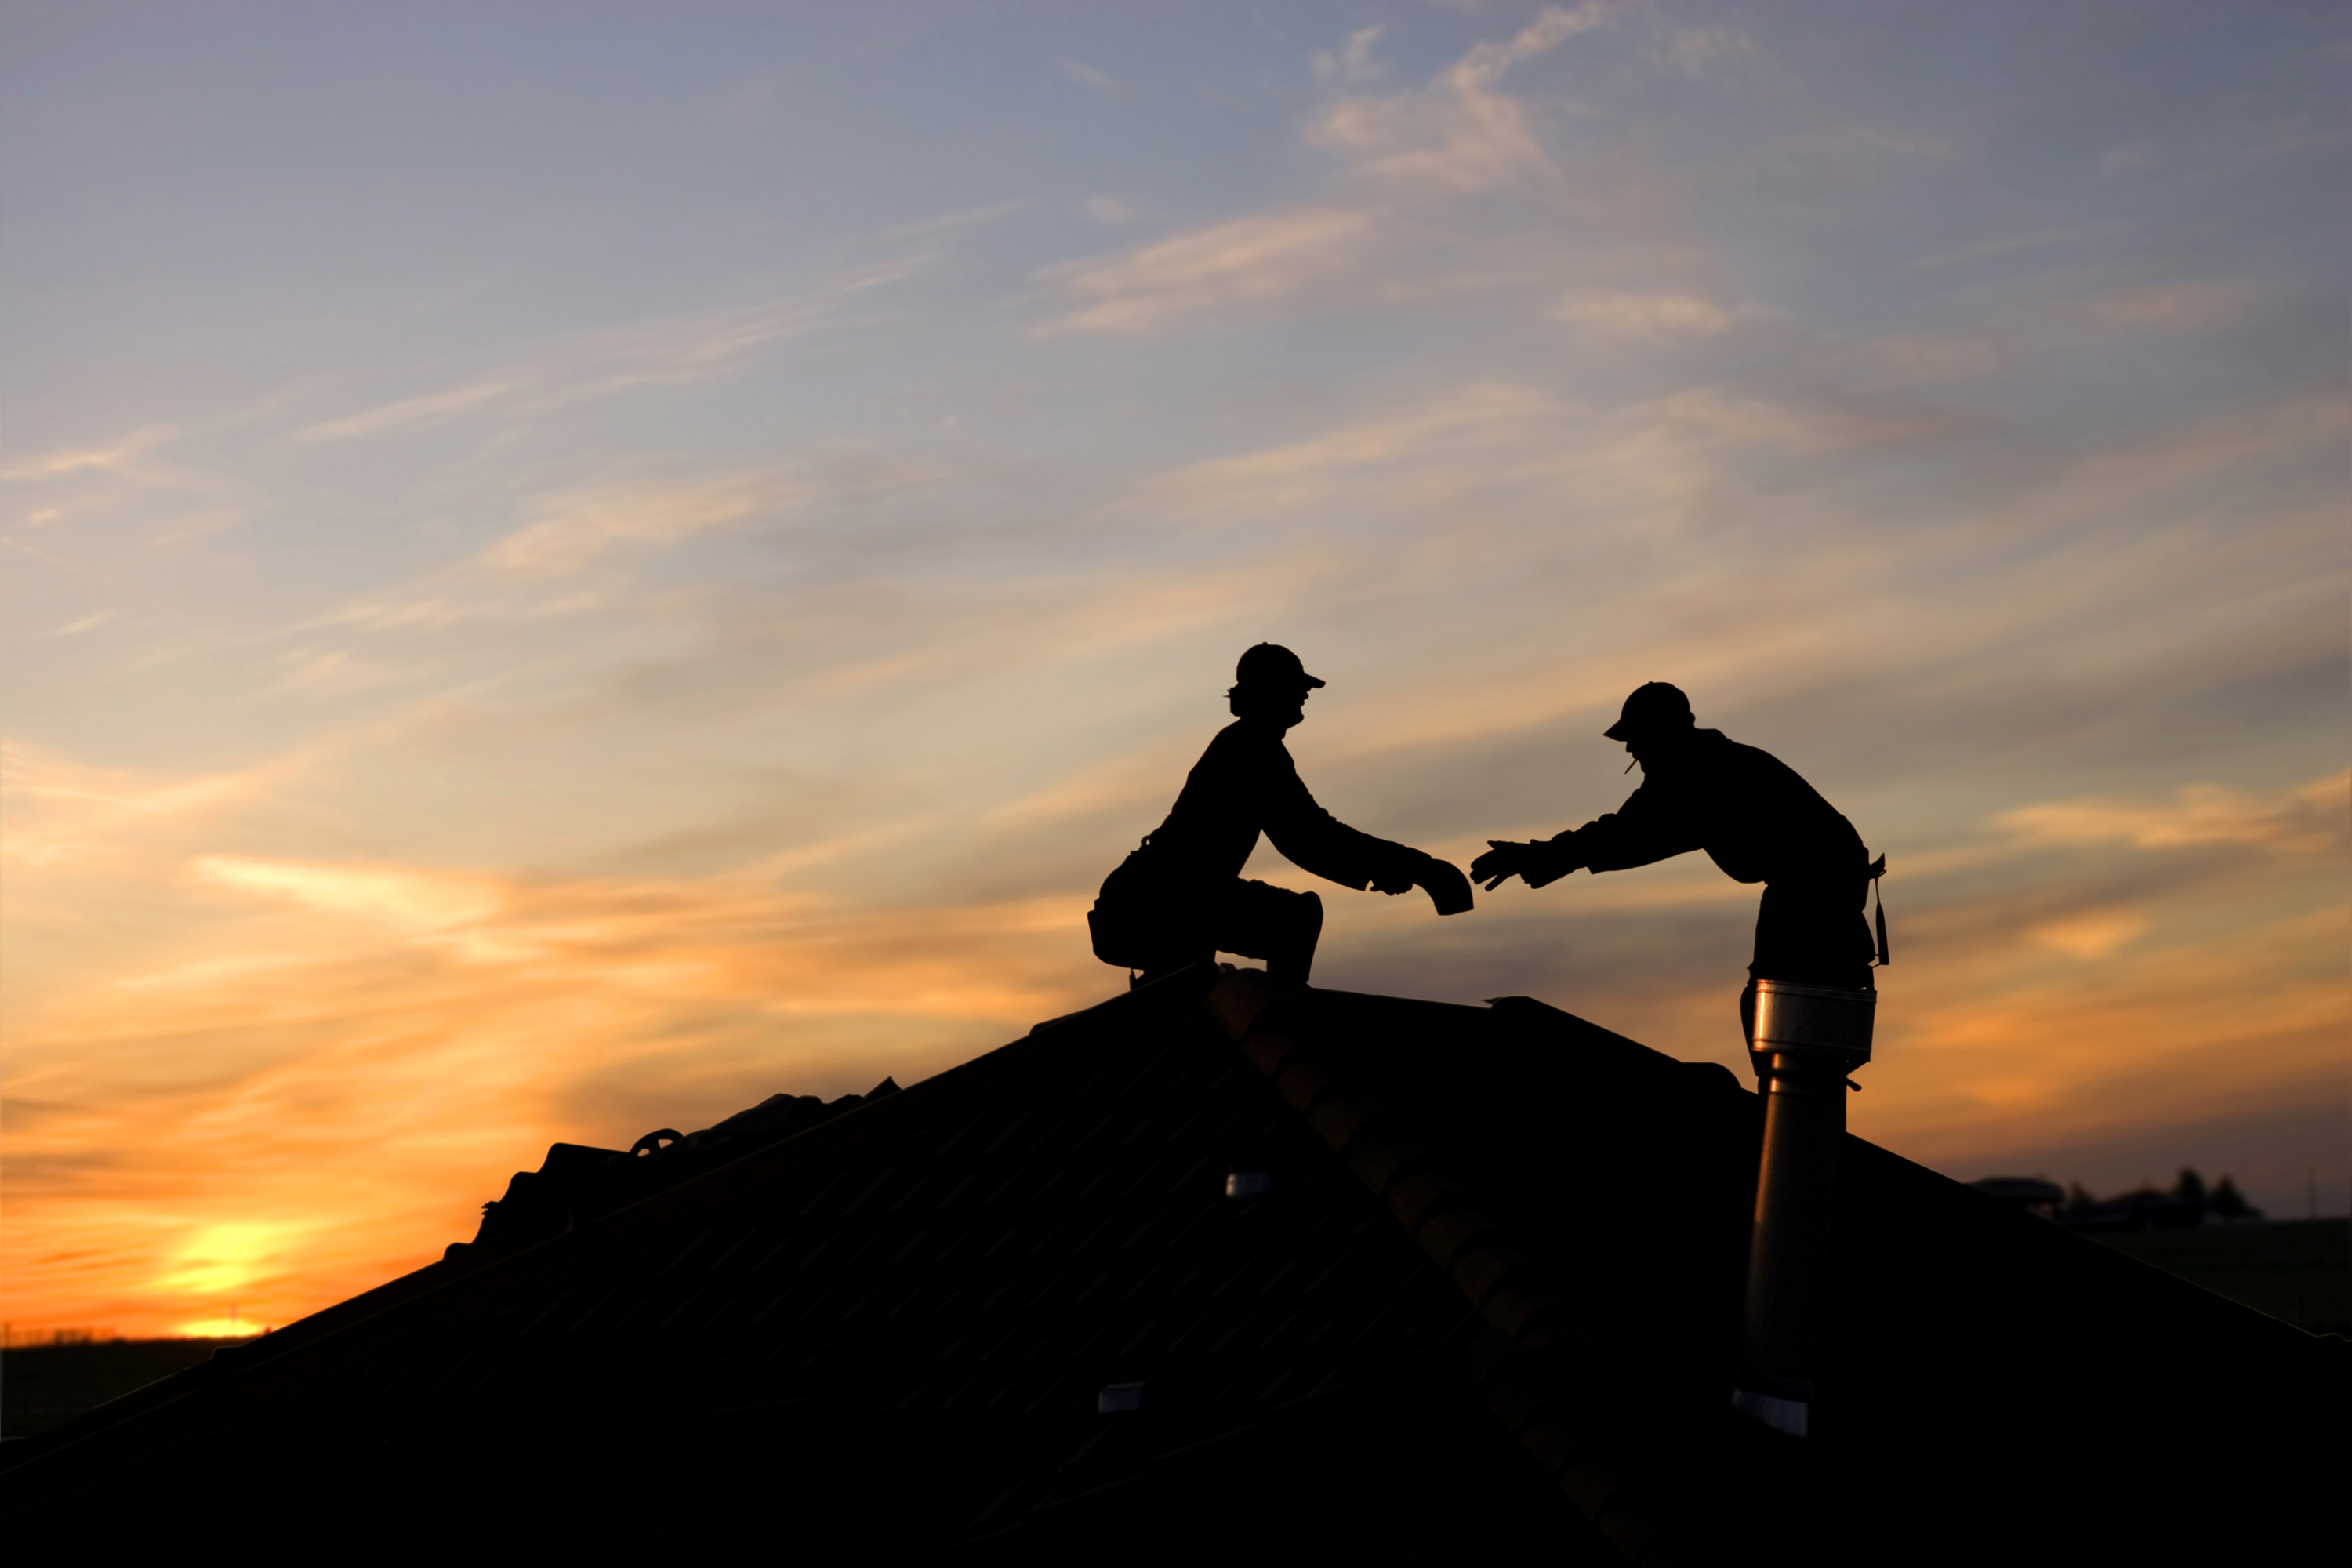 Two roofers working at dusk